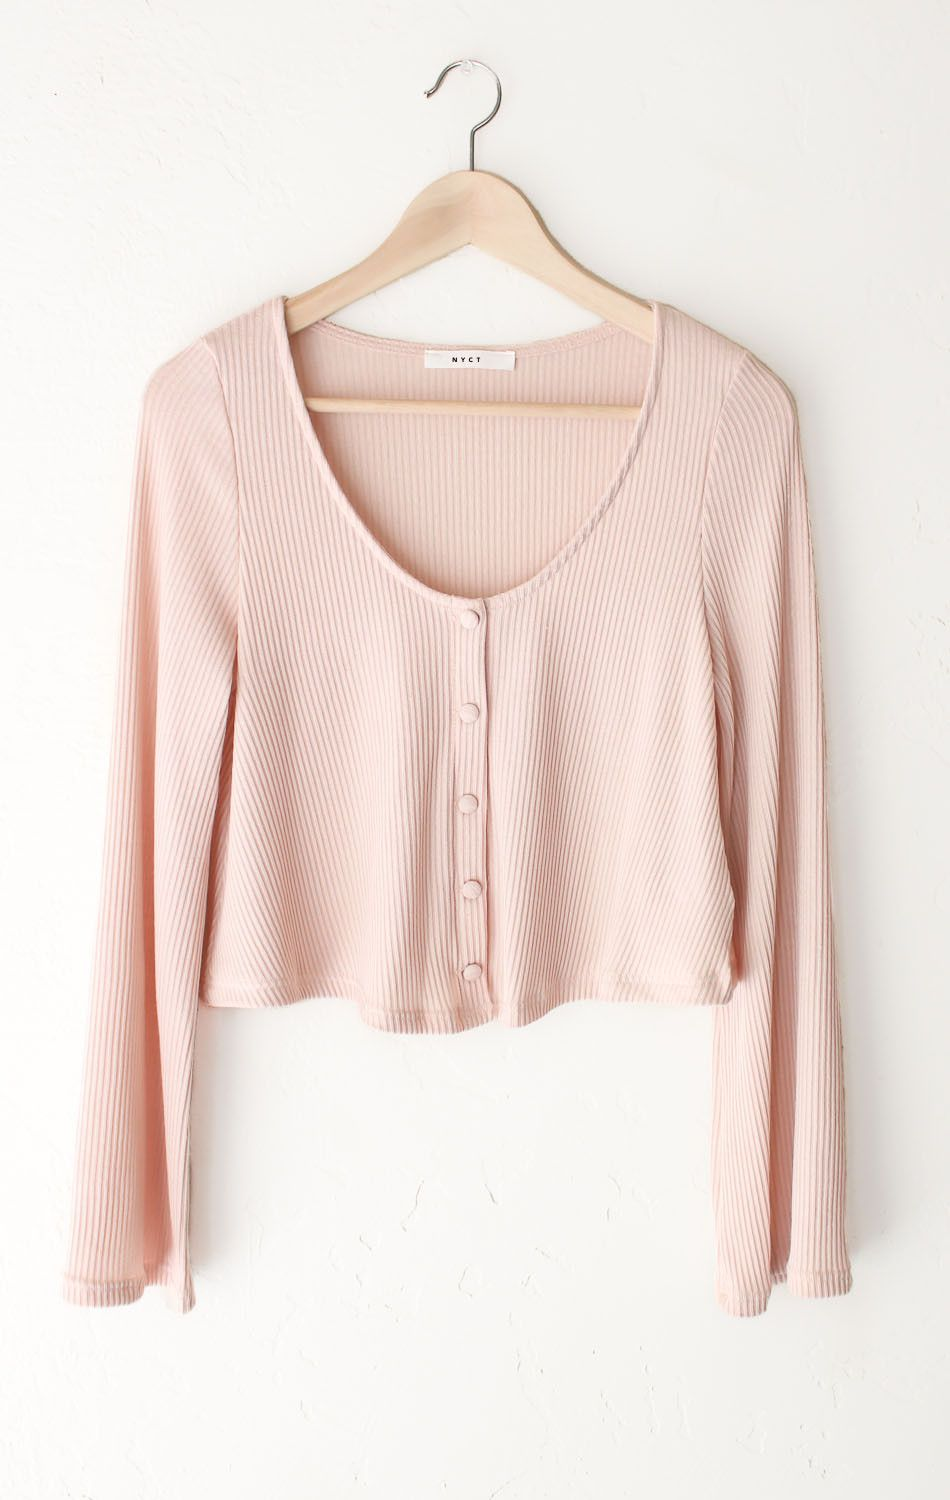 Ribbed Knit Crop Sweater - Pink | Rib knit, Clothes and Pink pink pink